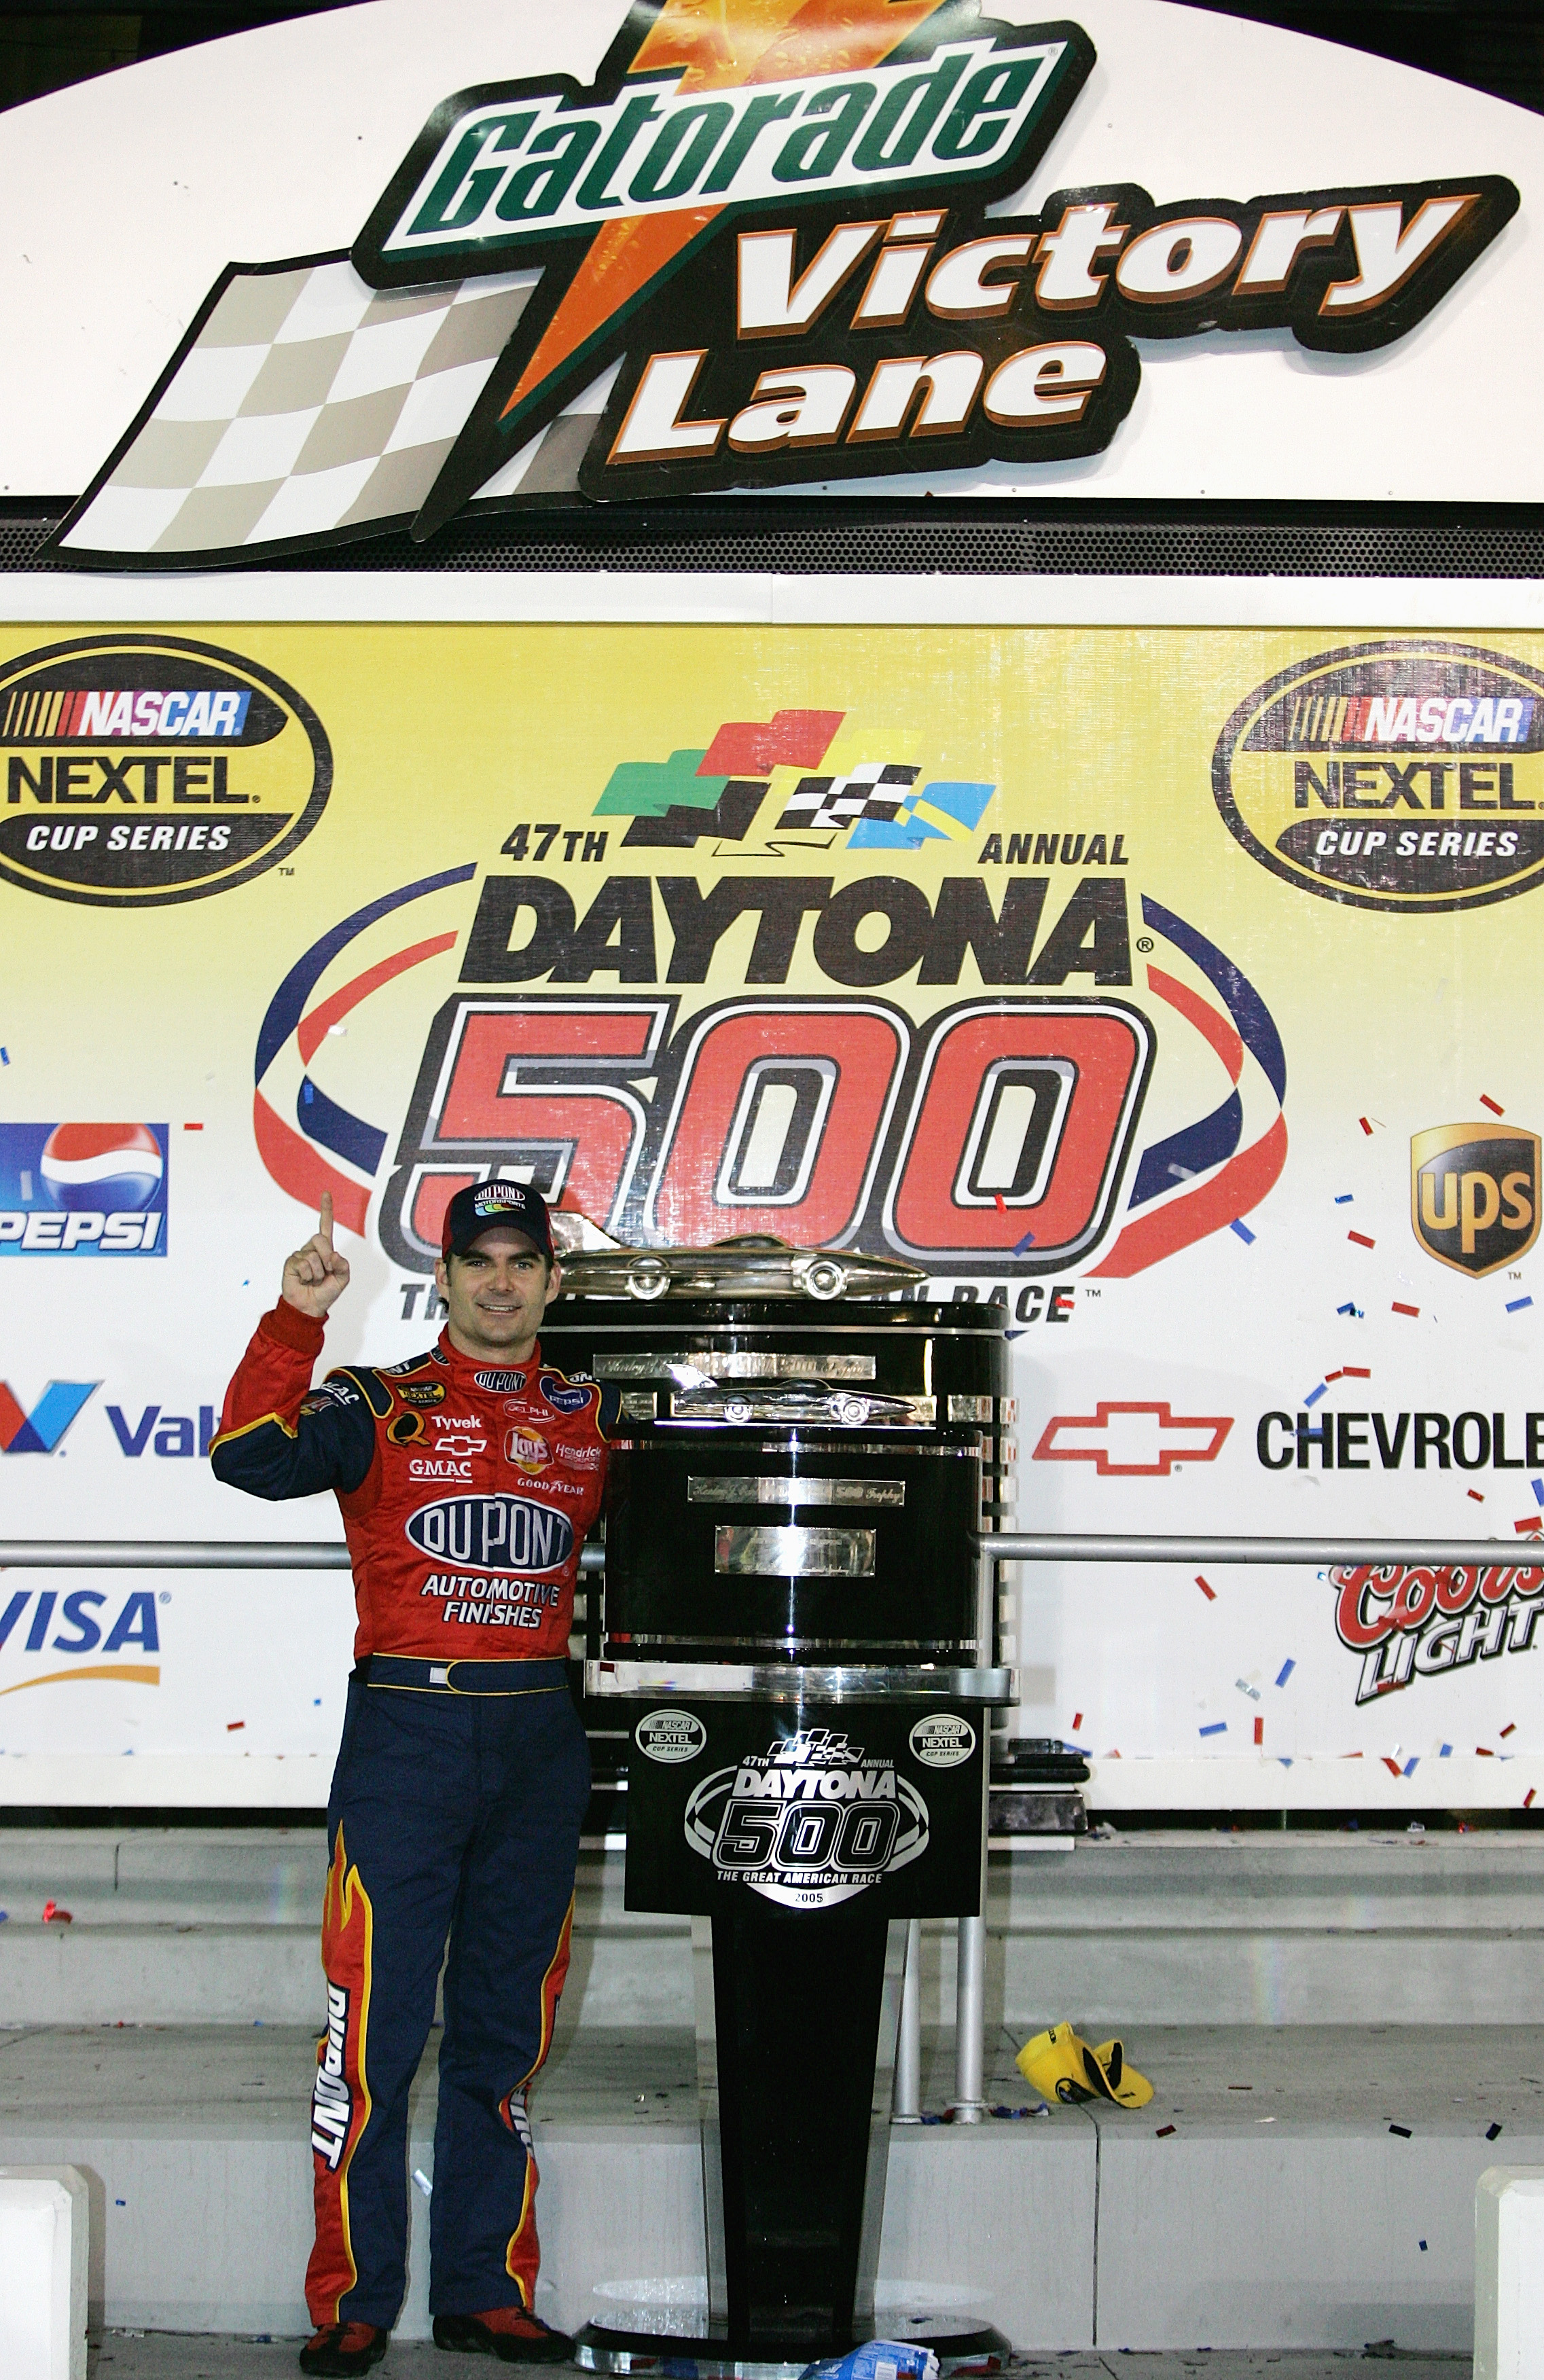 Jeff Gordon has won more restrictor plate races in history than anyone.